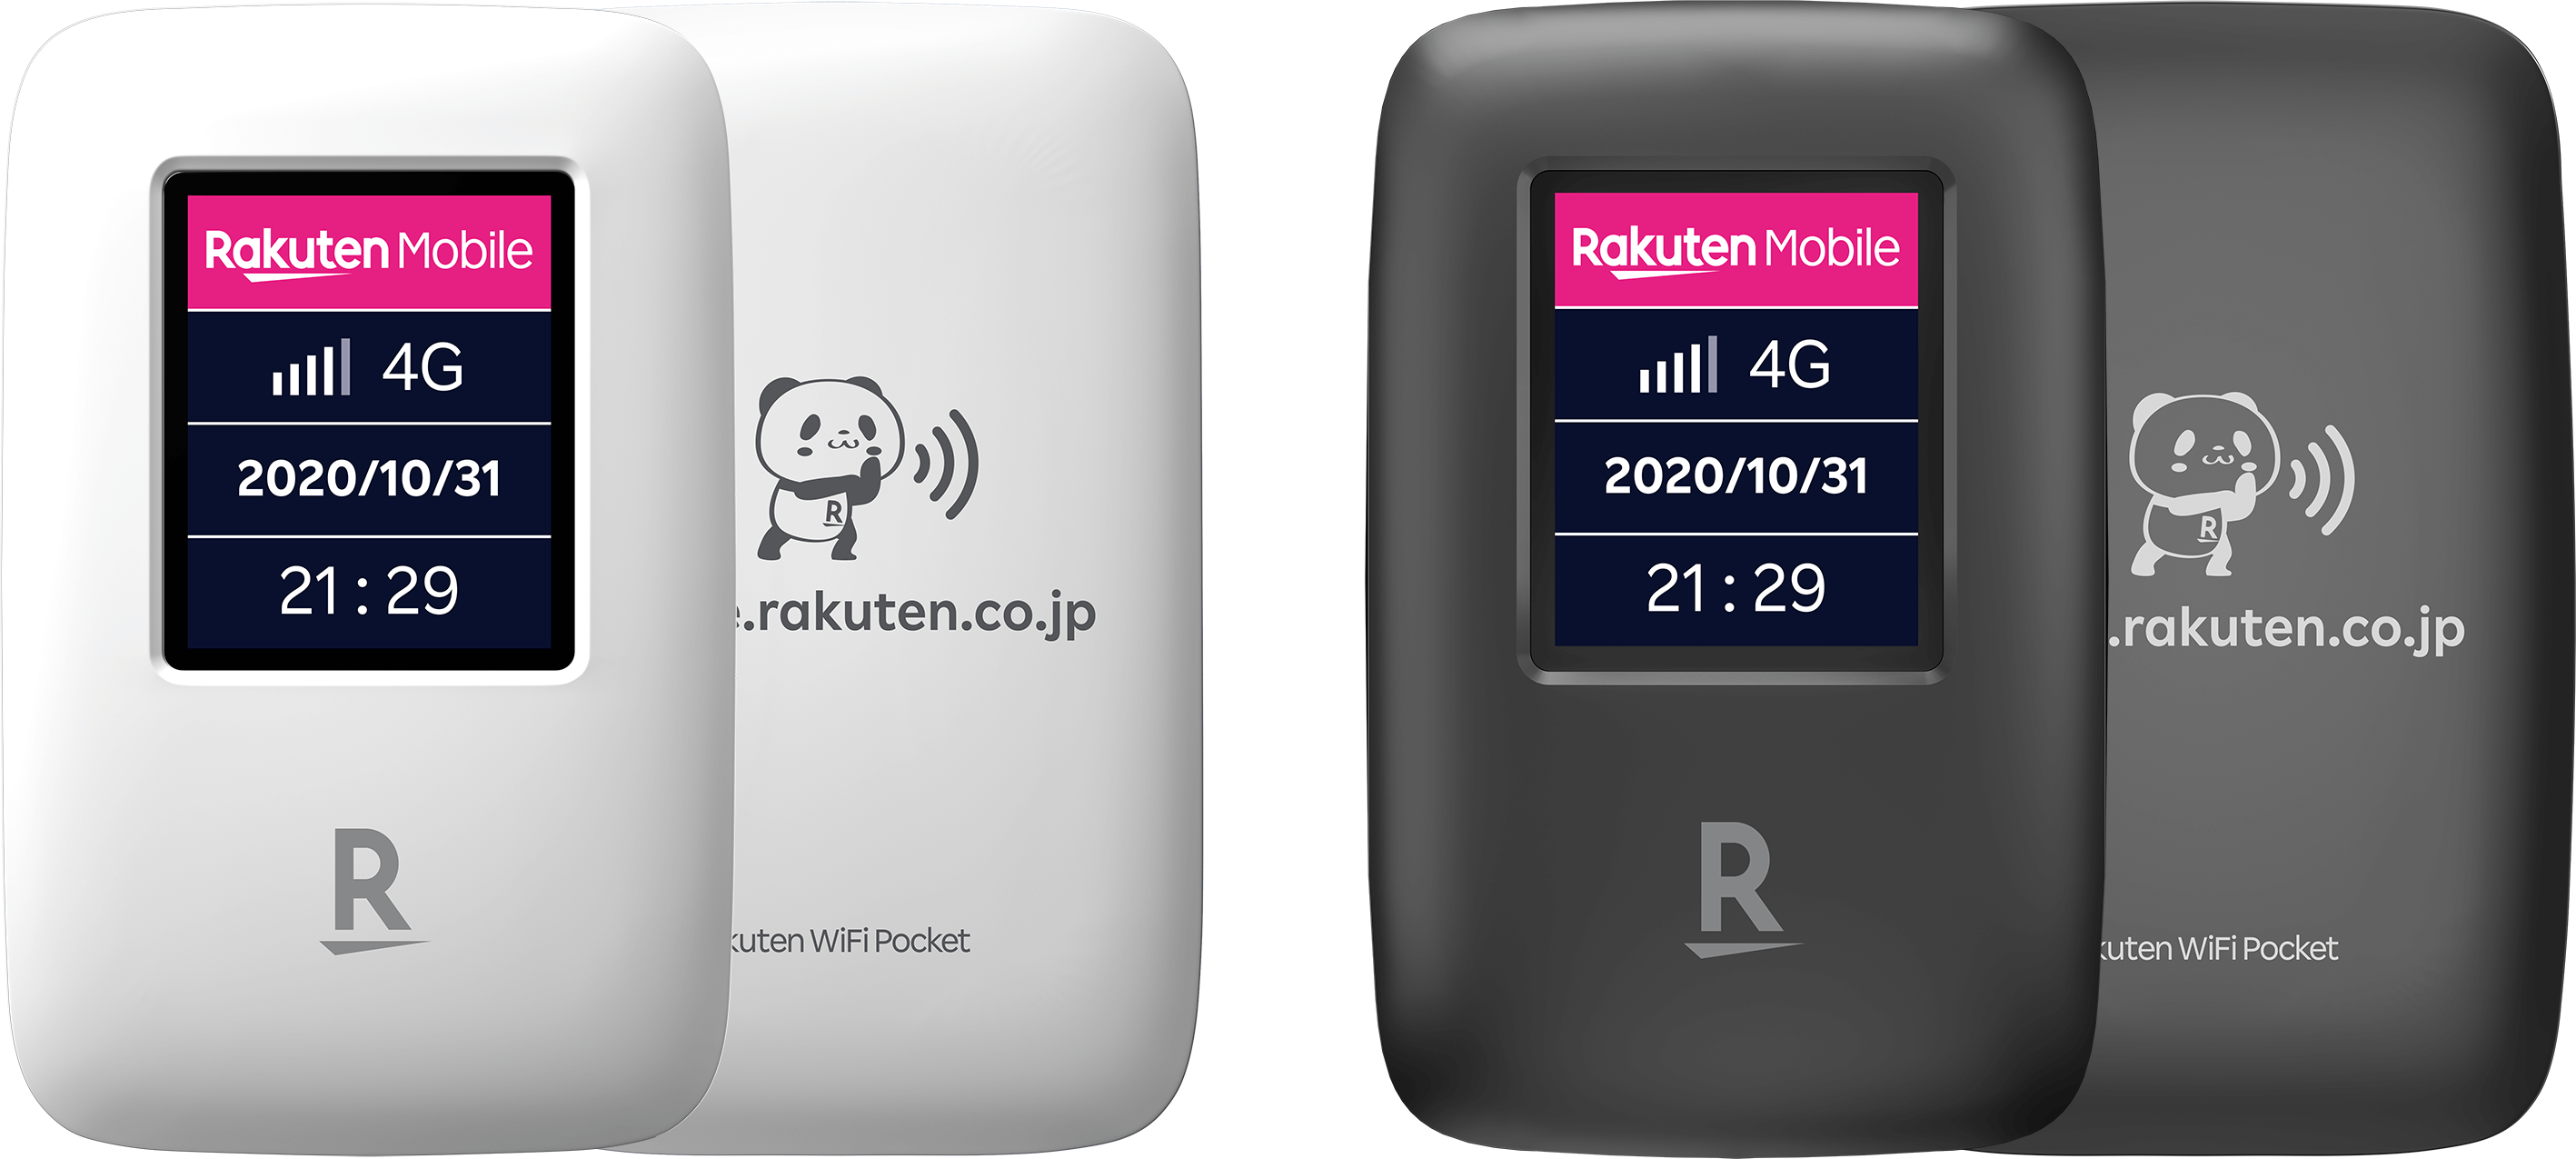 rakuten-wifi-pocket-design